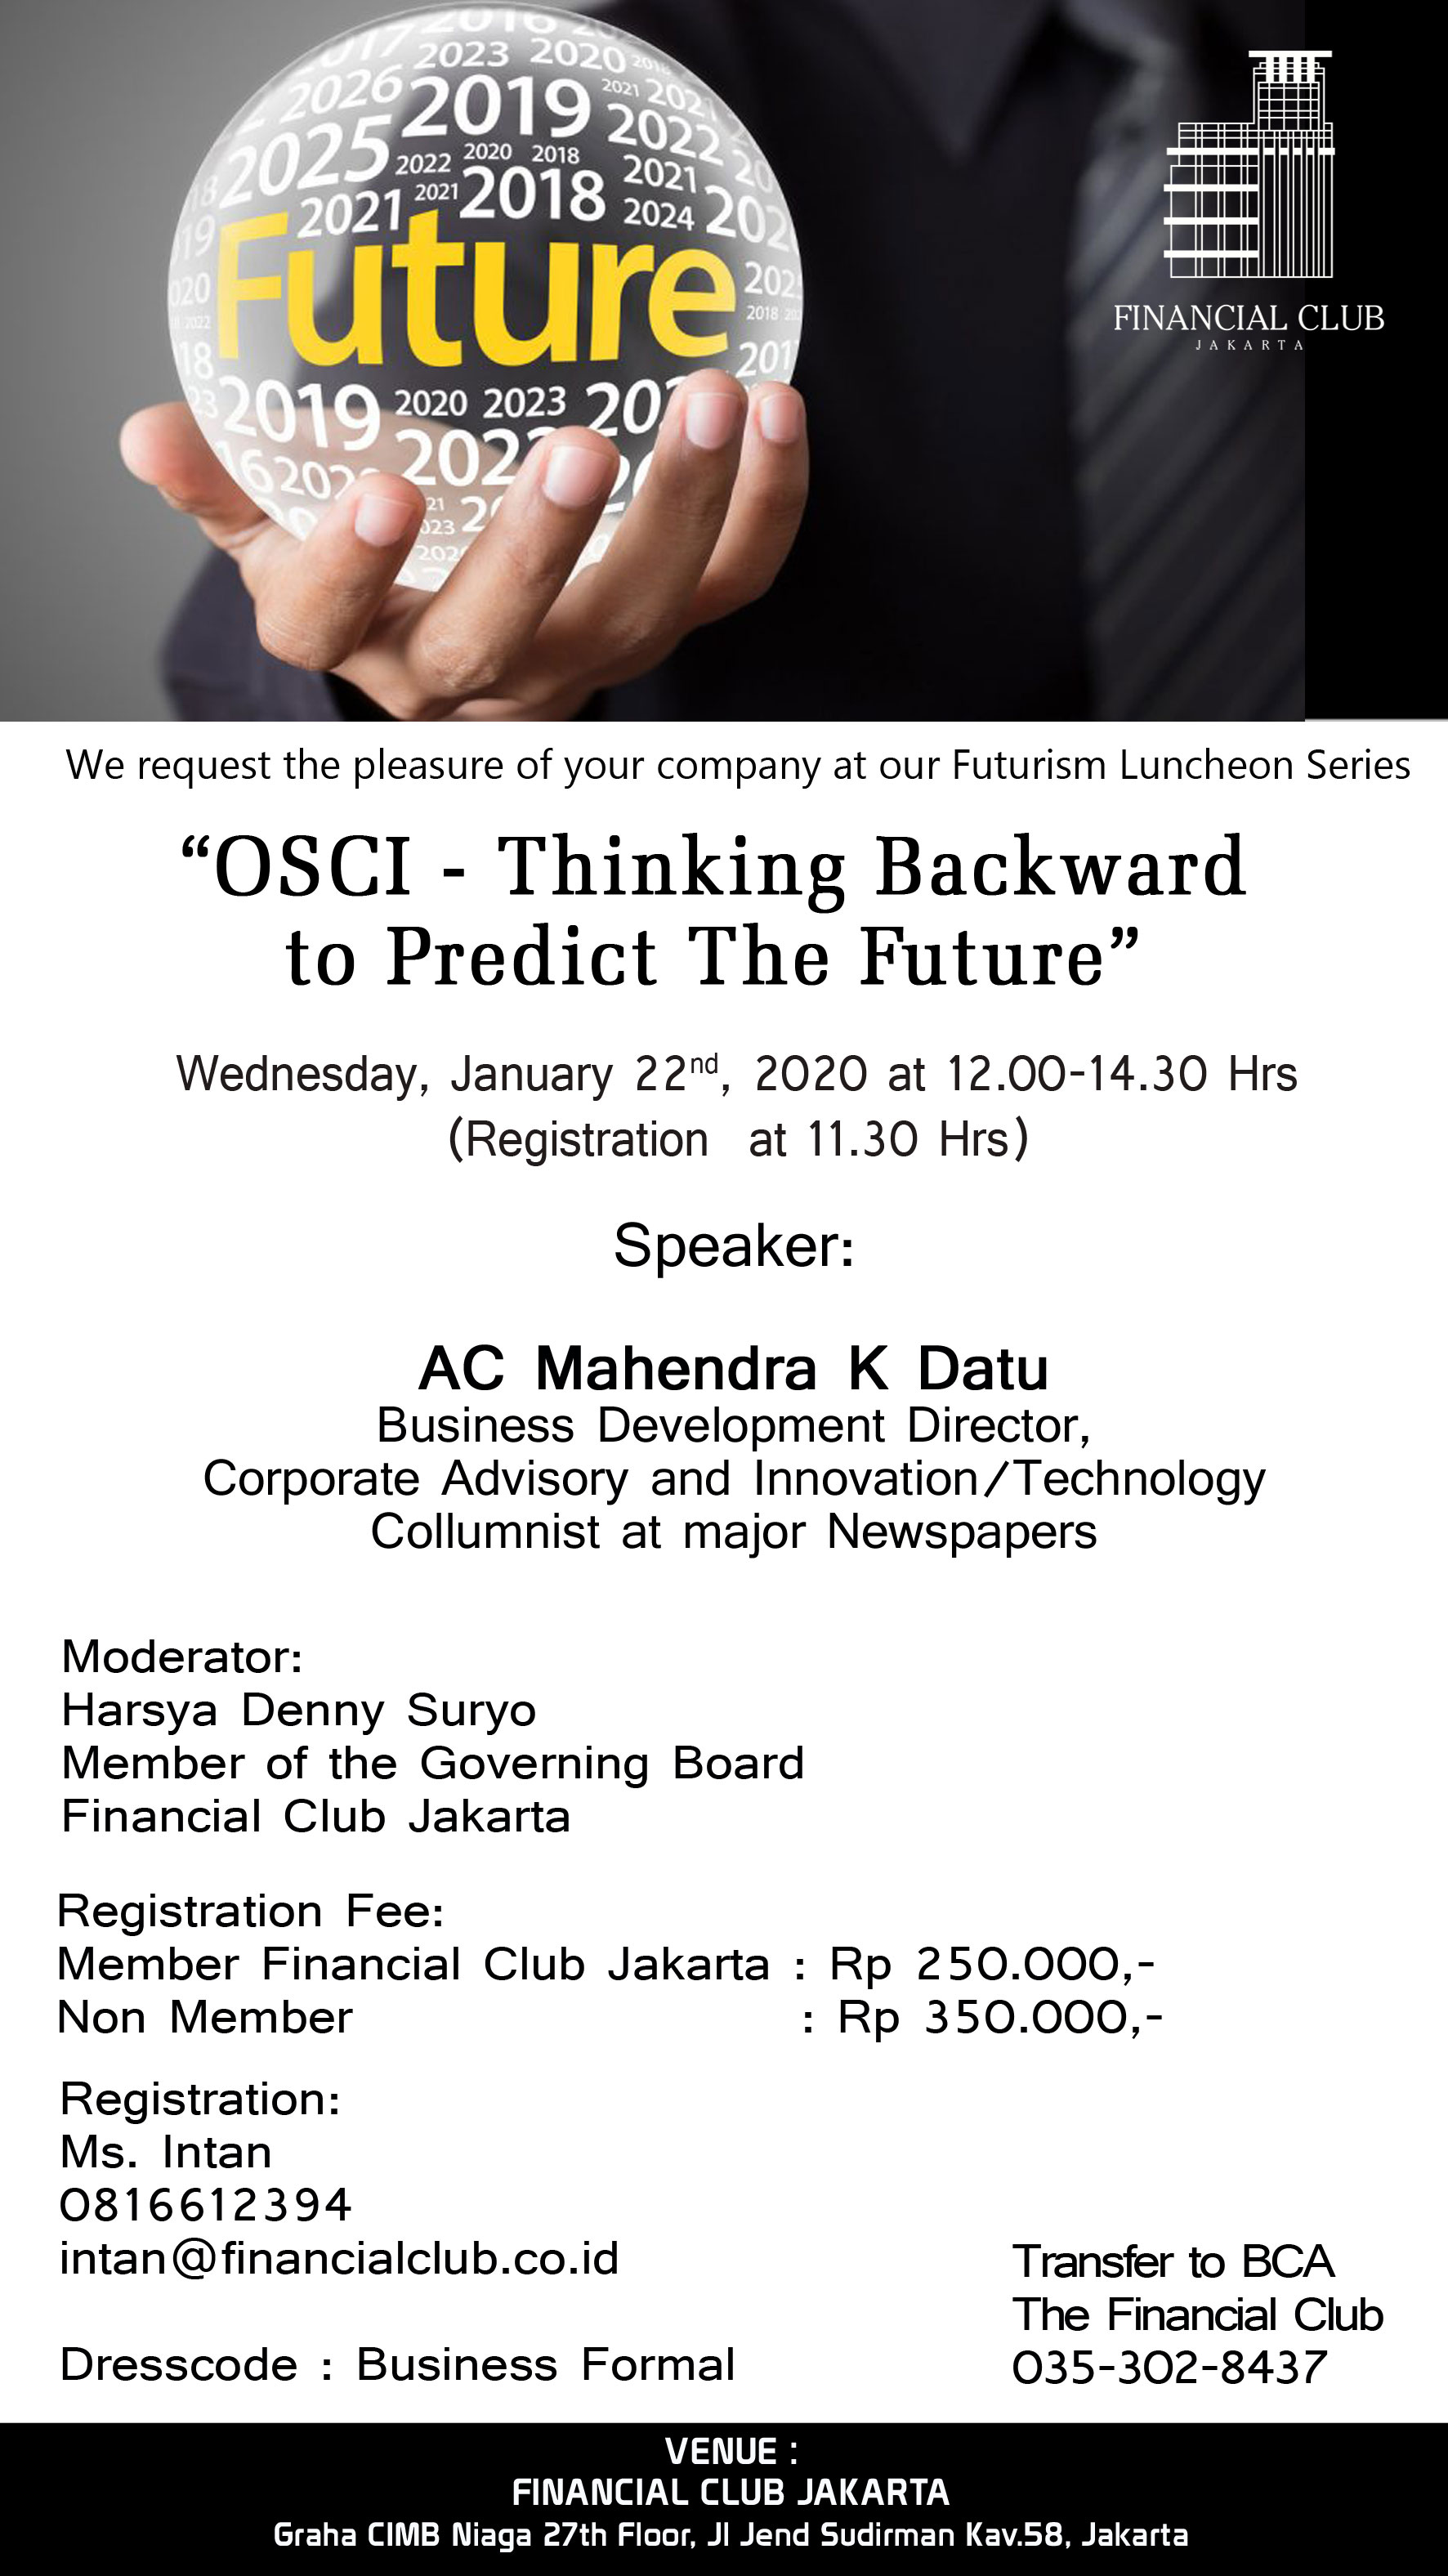 "Futurism Luncheon Series ""OSCI-Thinking Backward to Predict The Future"""